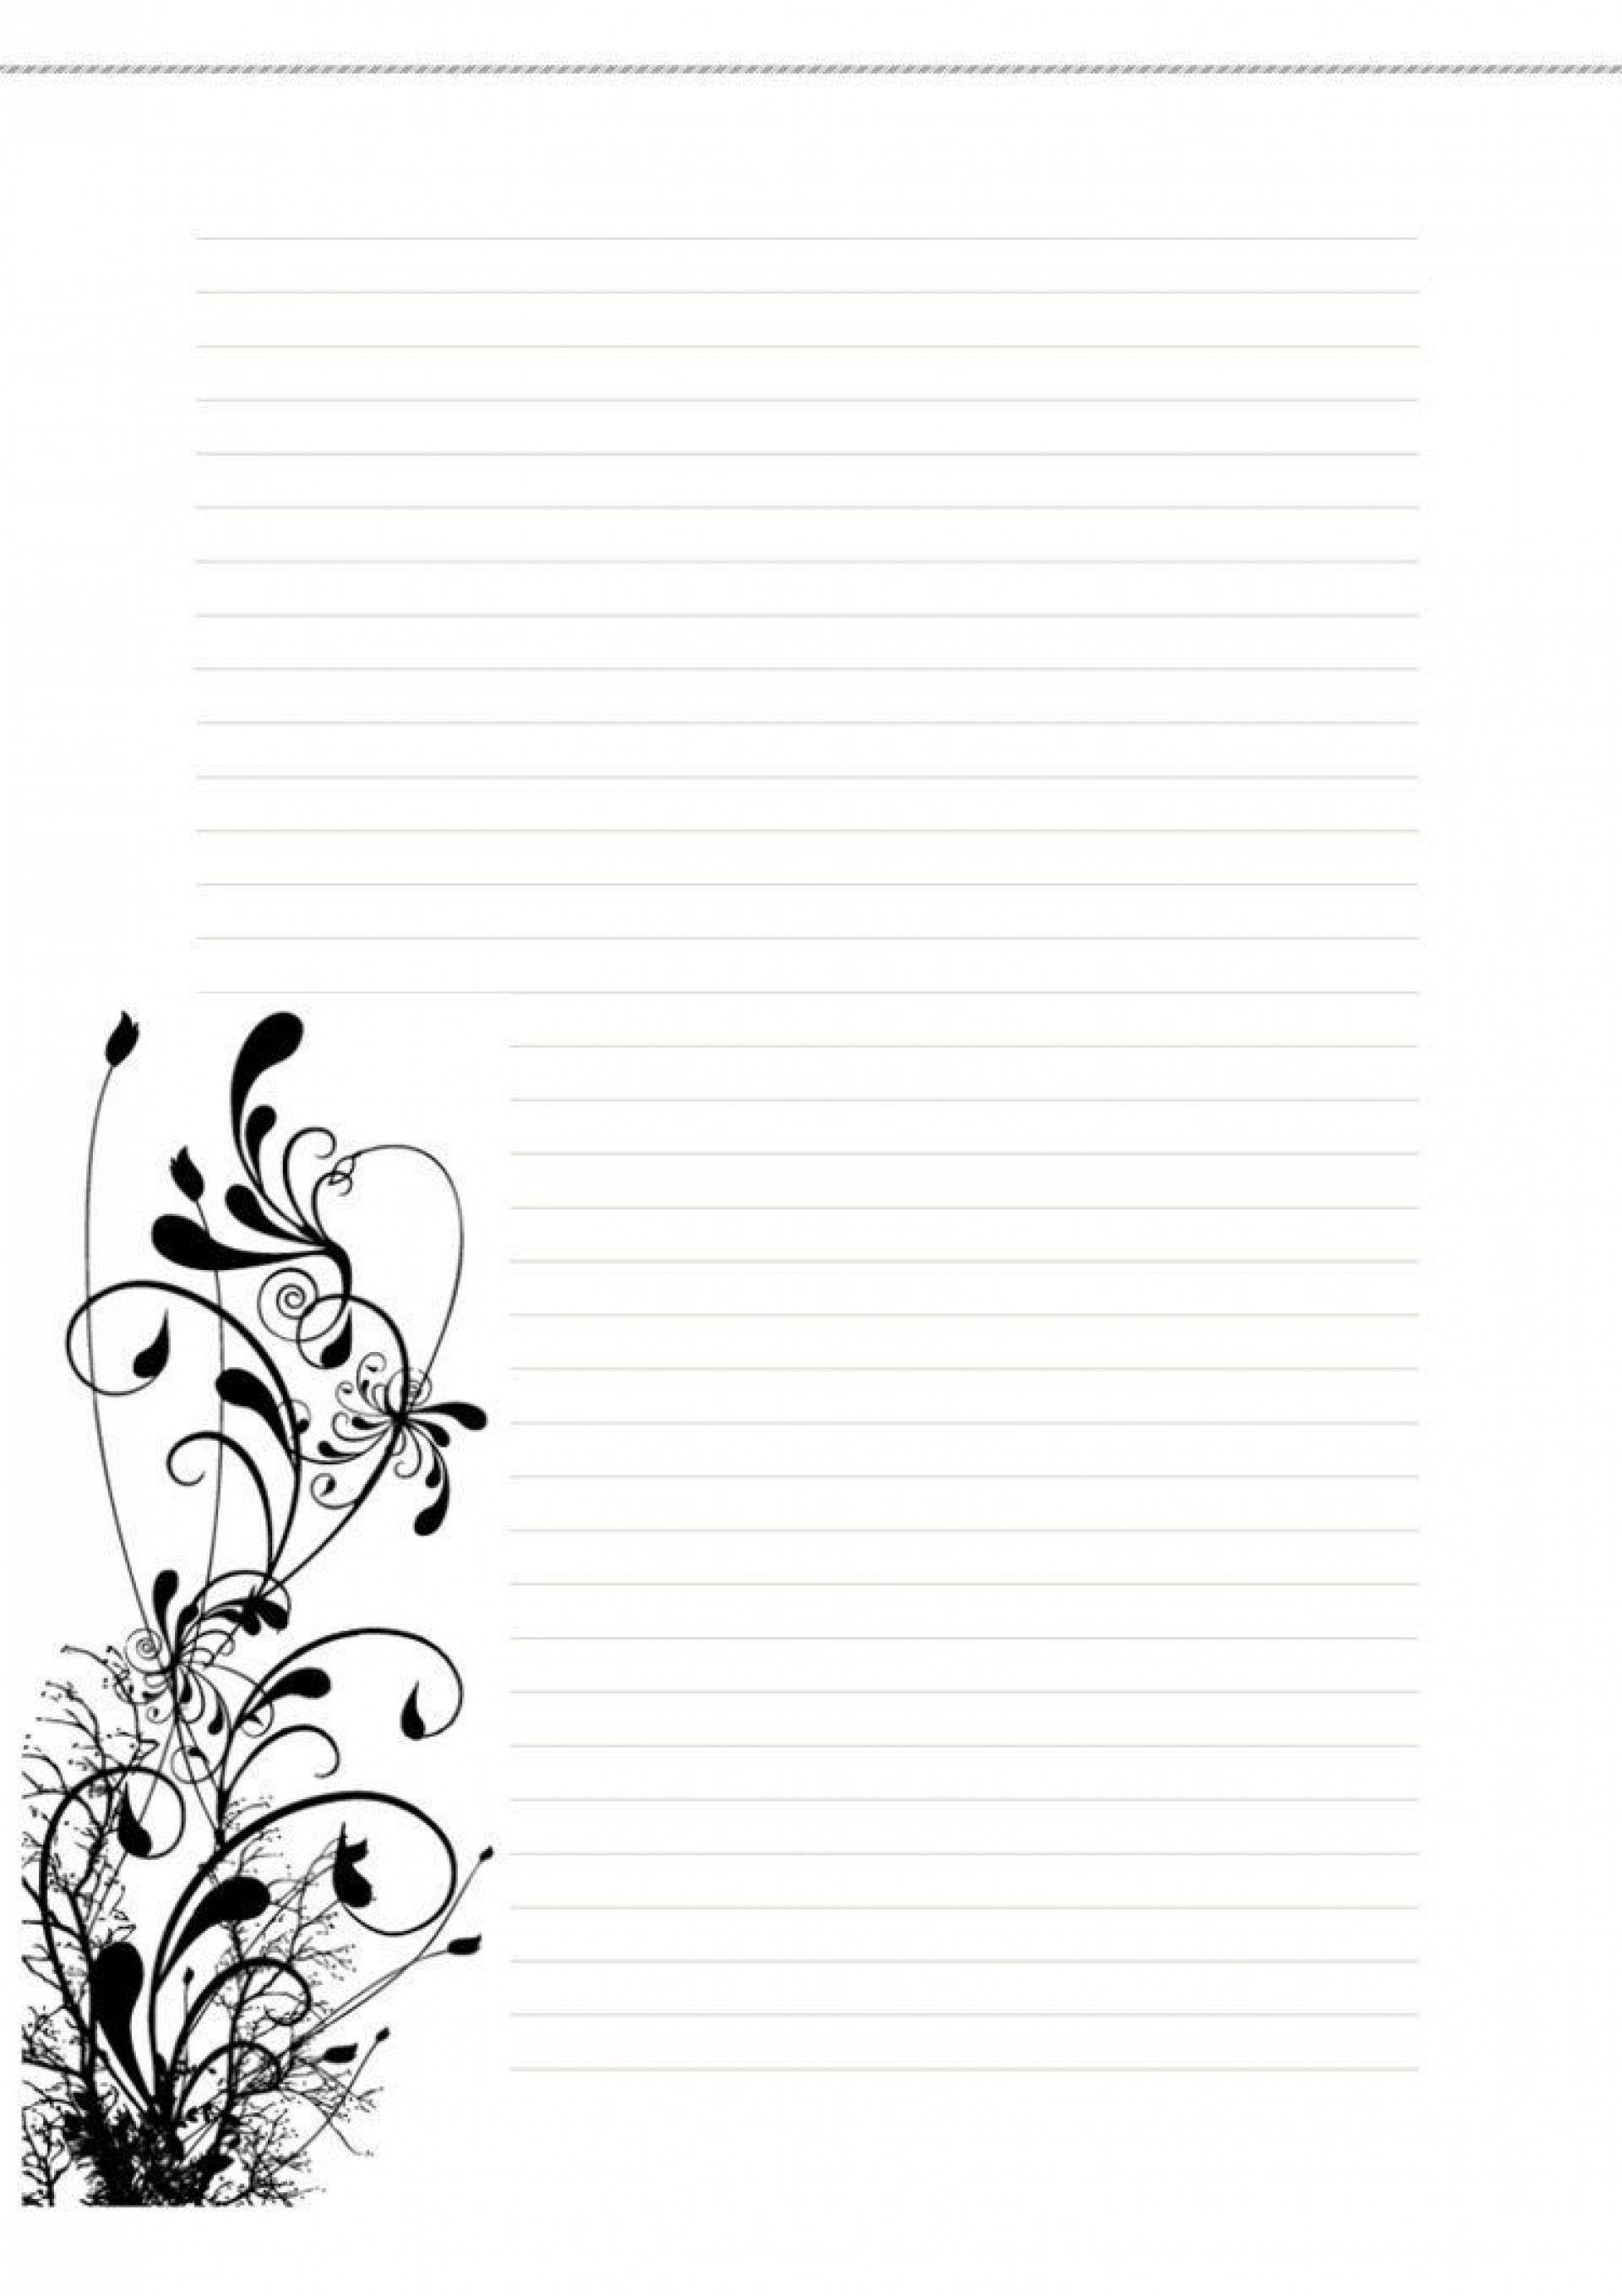 006 Incredible Free Printable Stationery Paper Template Image  Templates1920